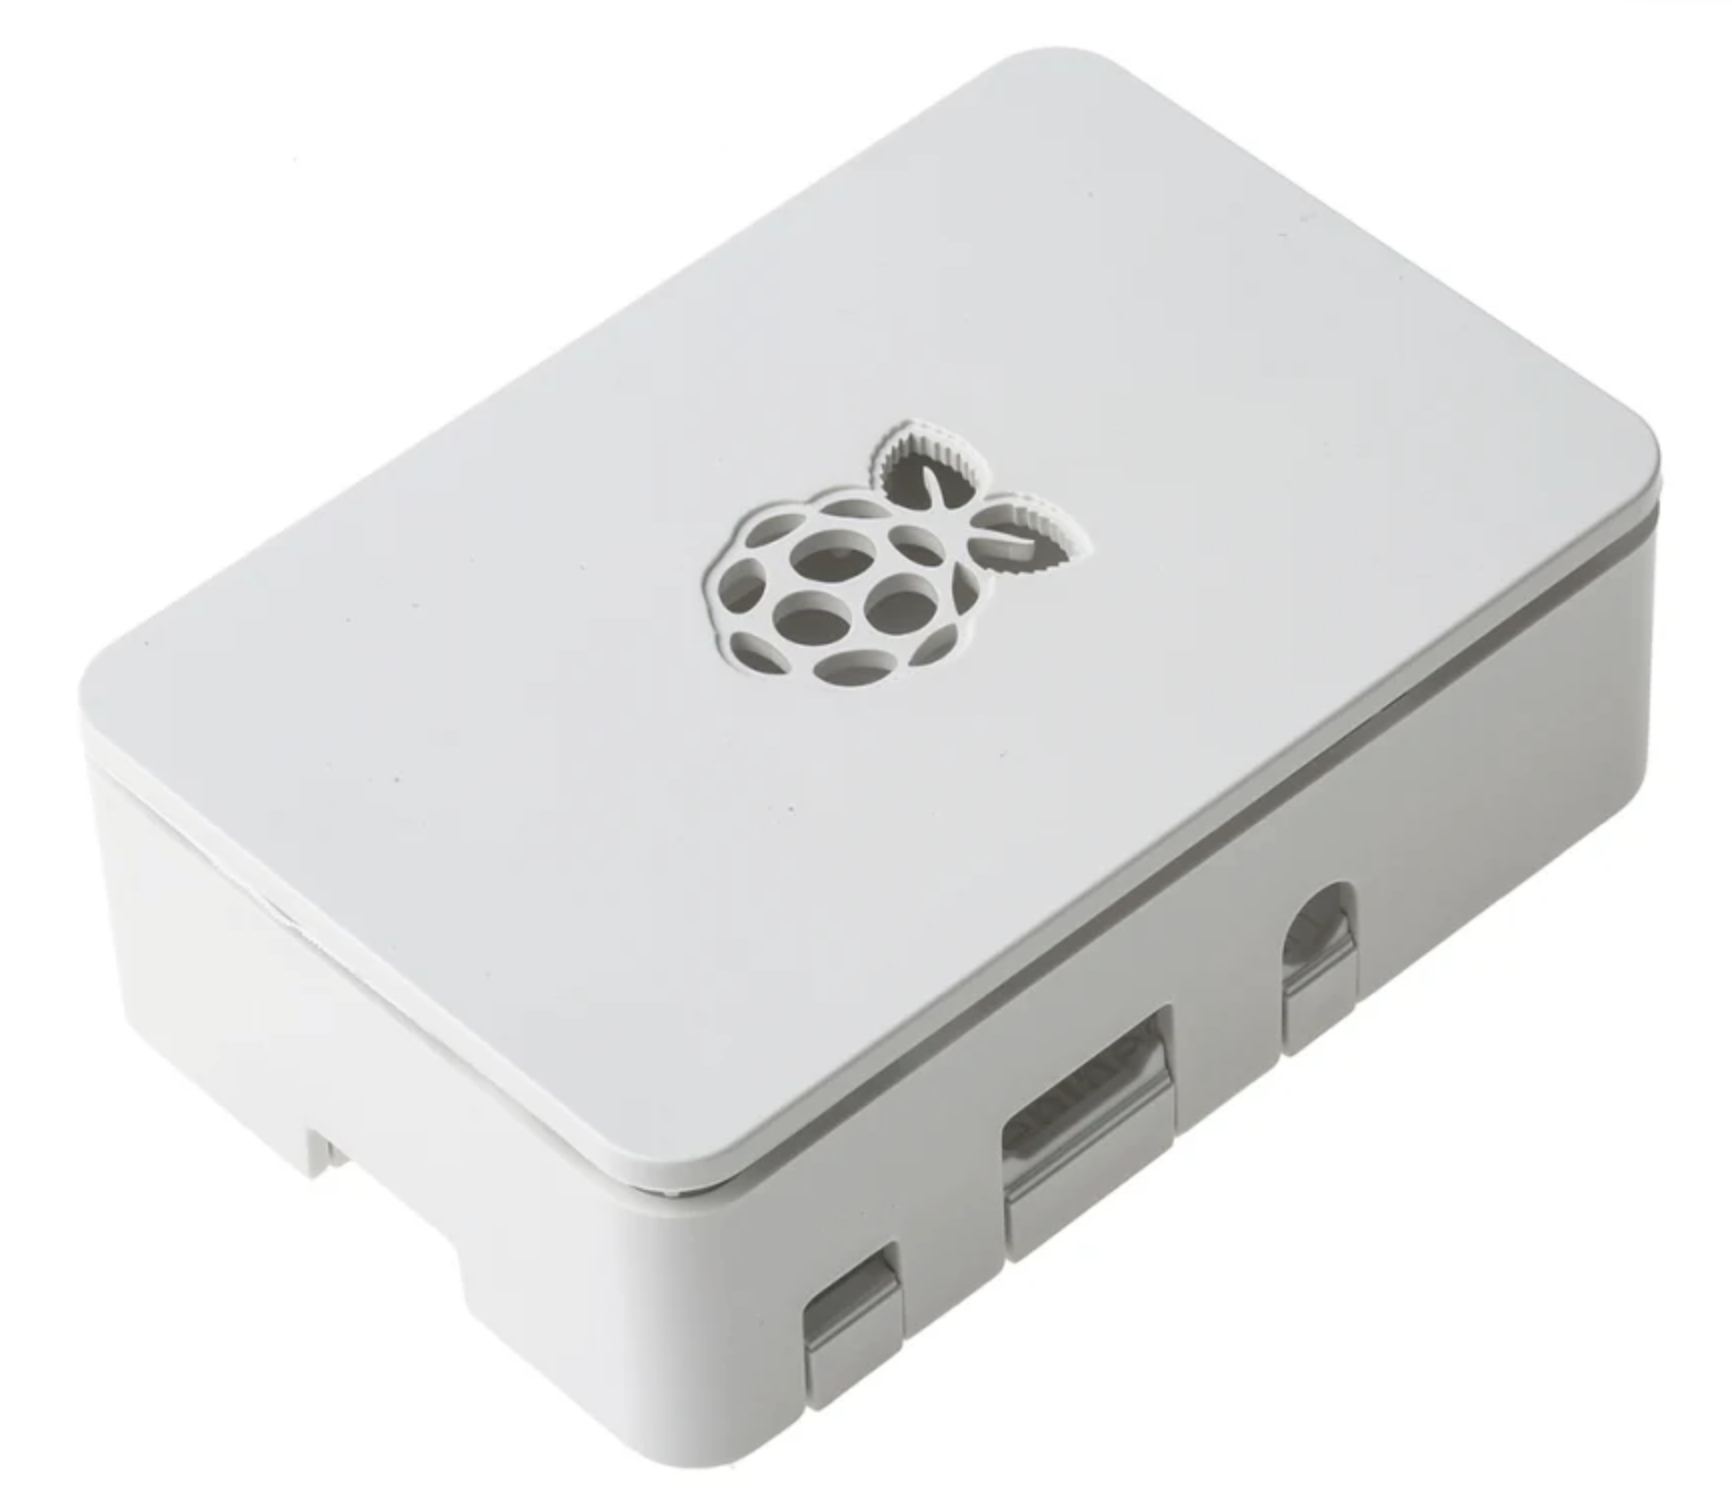 Designed to protect your Raspberry Pi 3 B from all those little knocks and scrapes, the official Raspberry Pi 3 Case in red/white (think Raspberries a